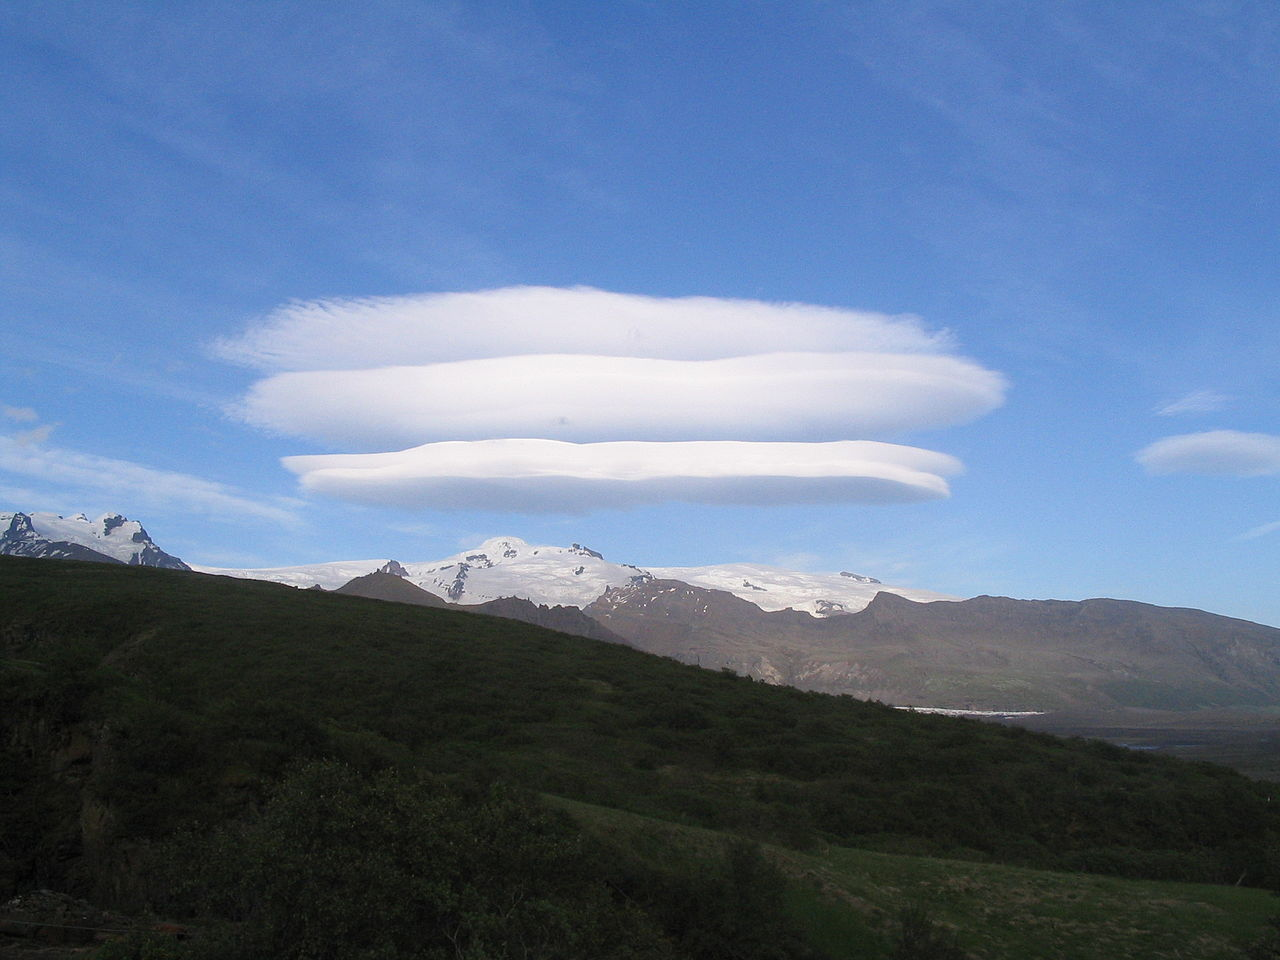 These are lenticular clouds.